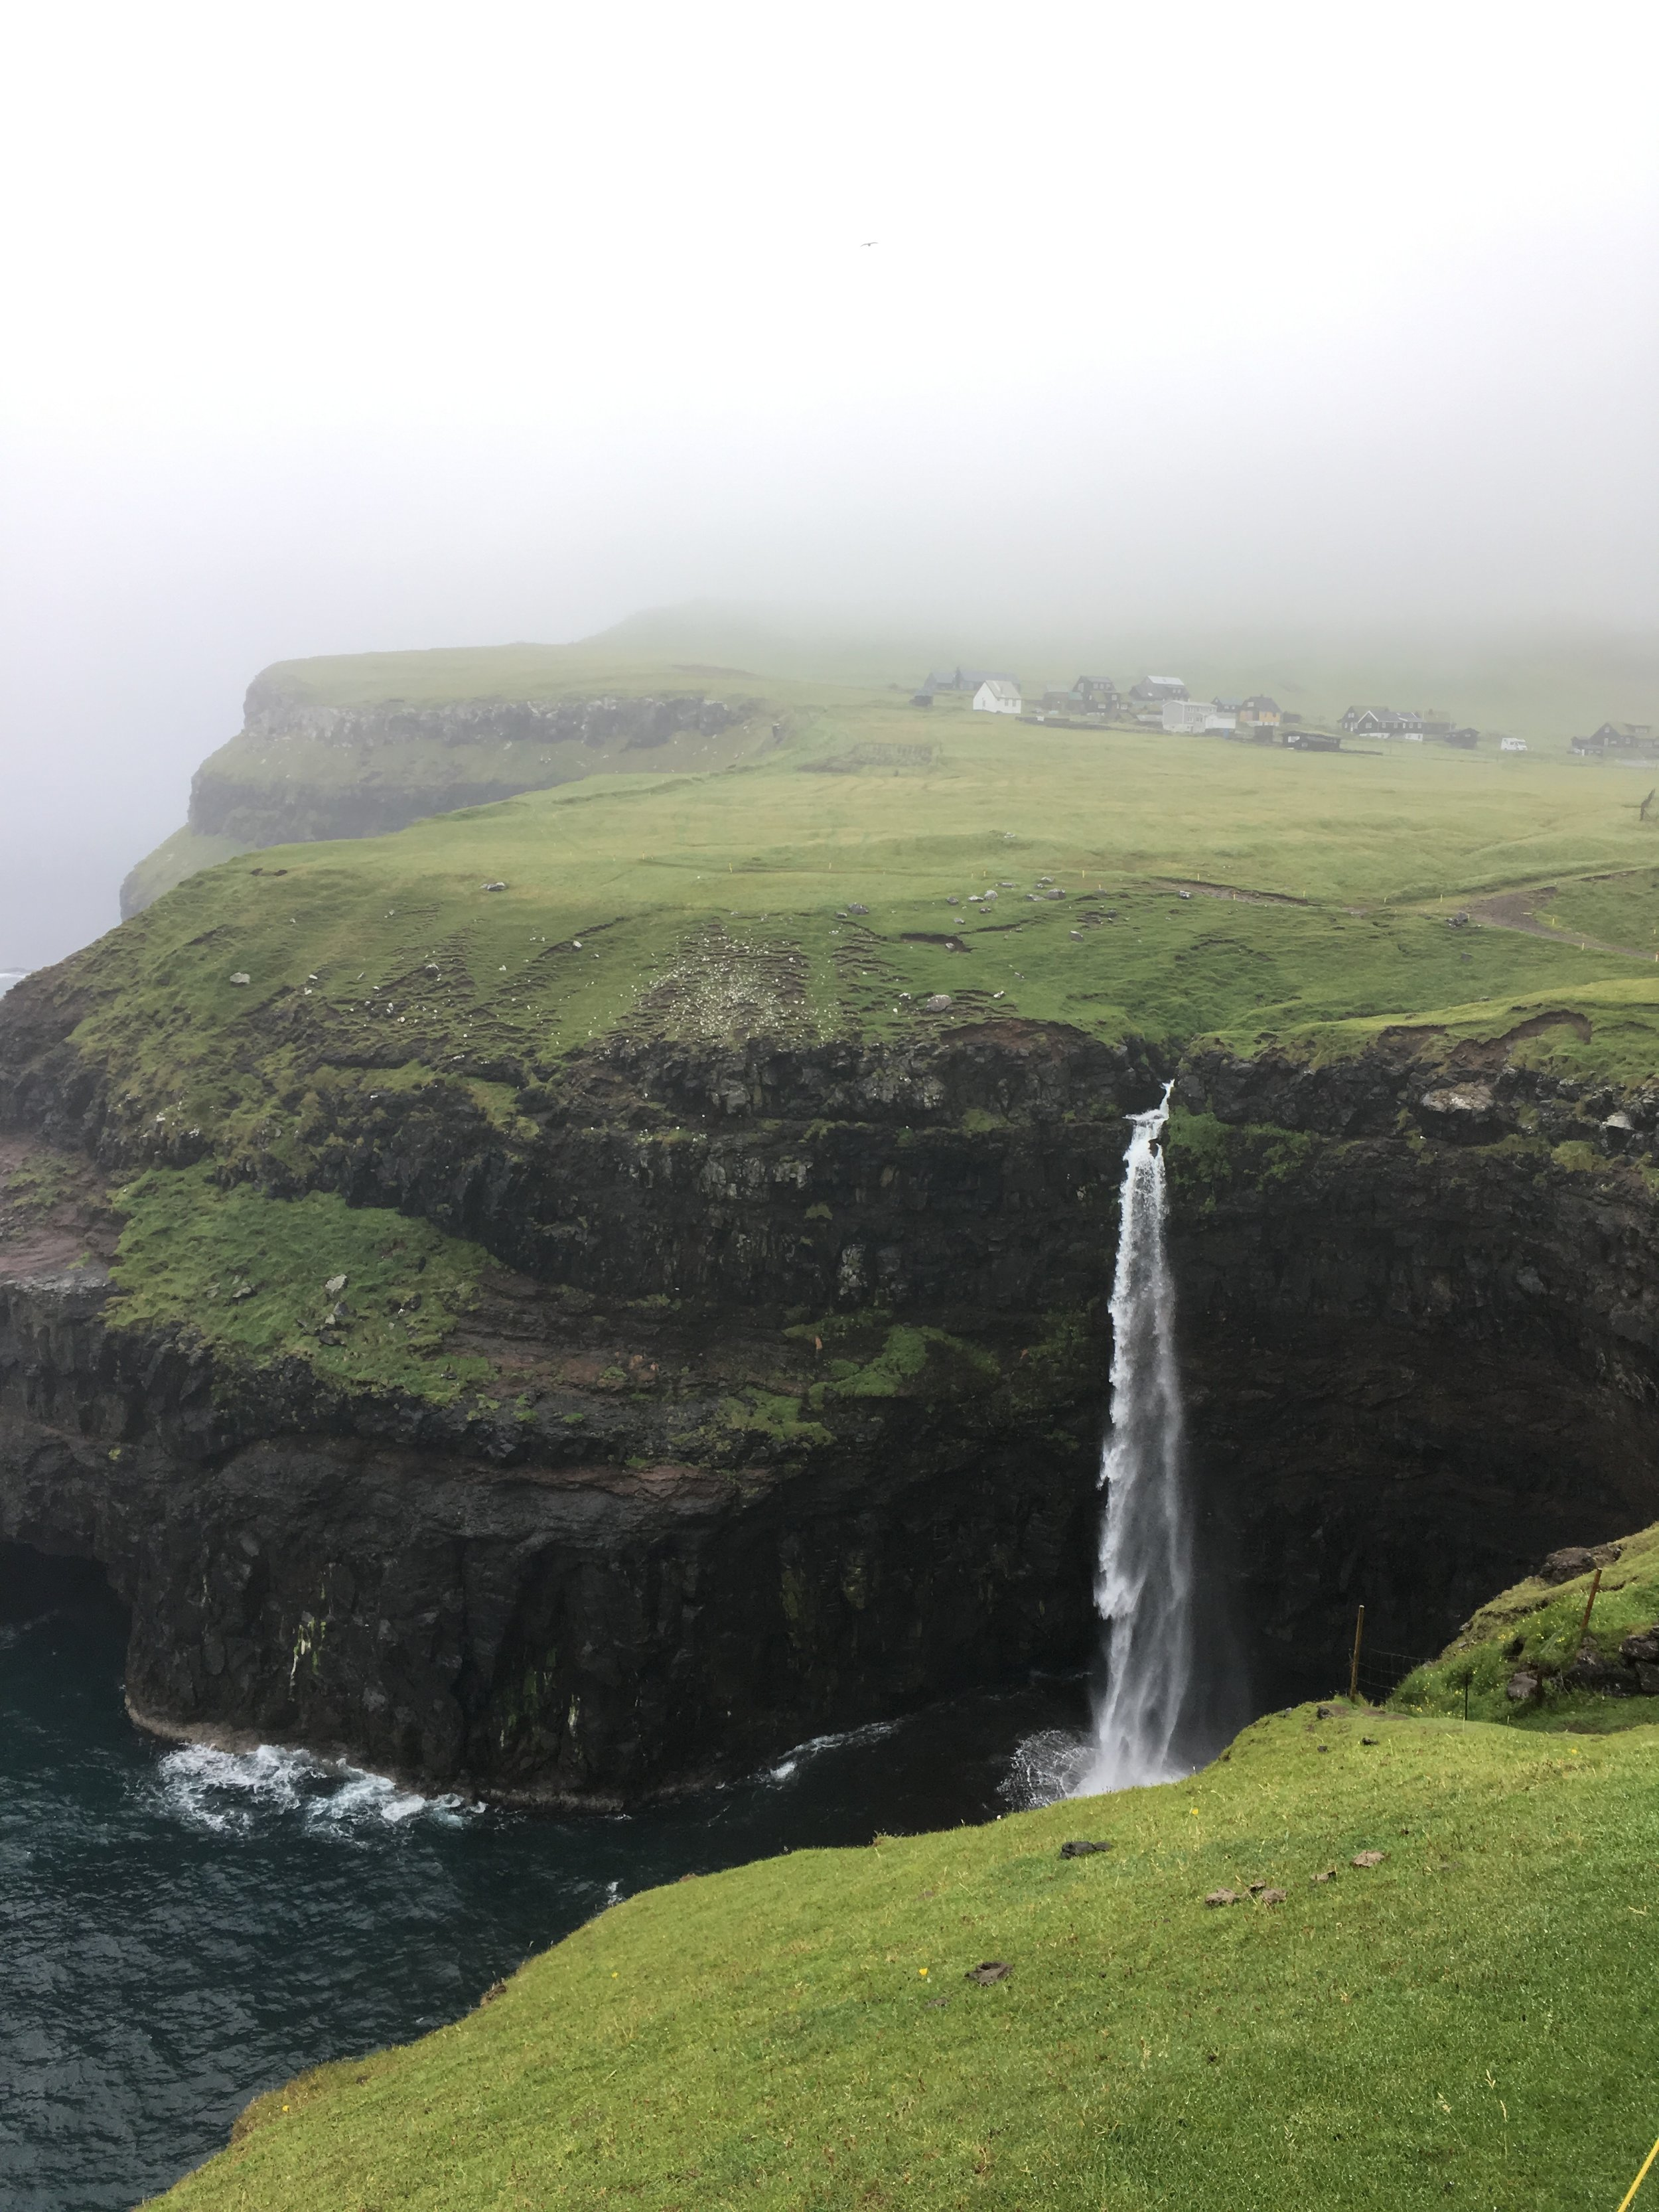 We pestered our bus driver to take us to see the  Mulafossur Waterfall  on the island of Vagar, so on our last day on route to the airport in extreme cold and fog we visited and wow it did not disappoint! If you're looking for a holiday with a difference, love walking, knitting and exploring – the Faroe Islands will not disapoint!